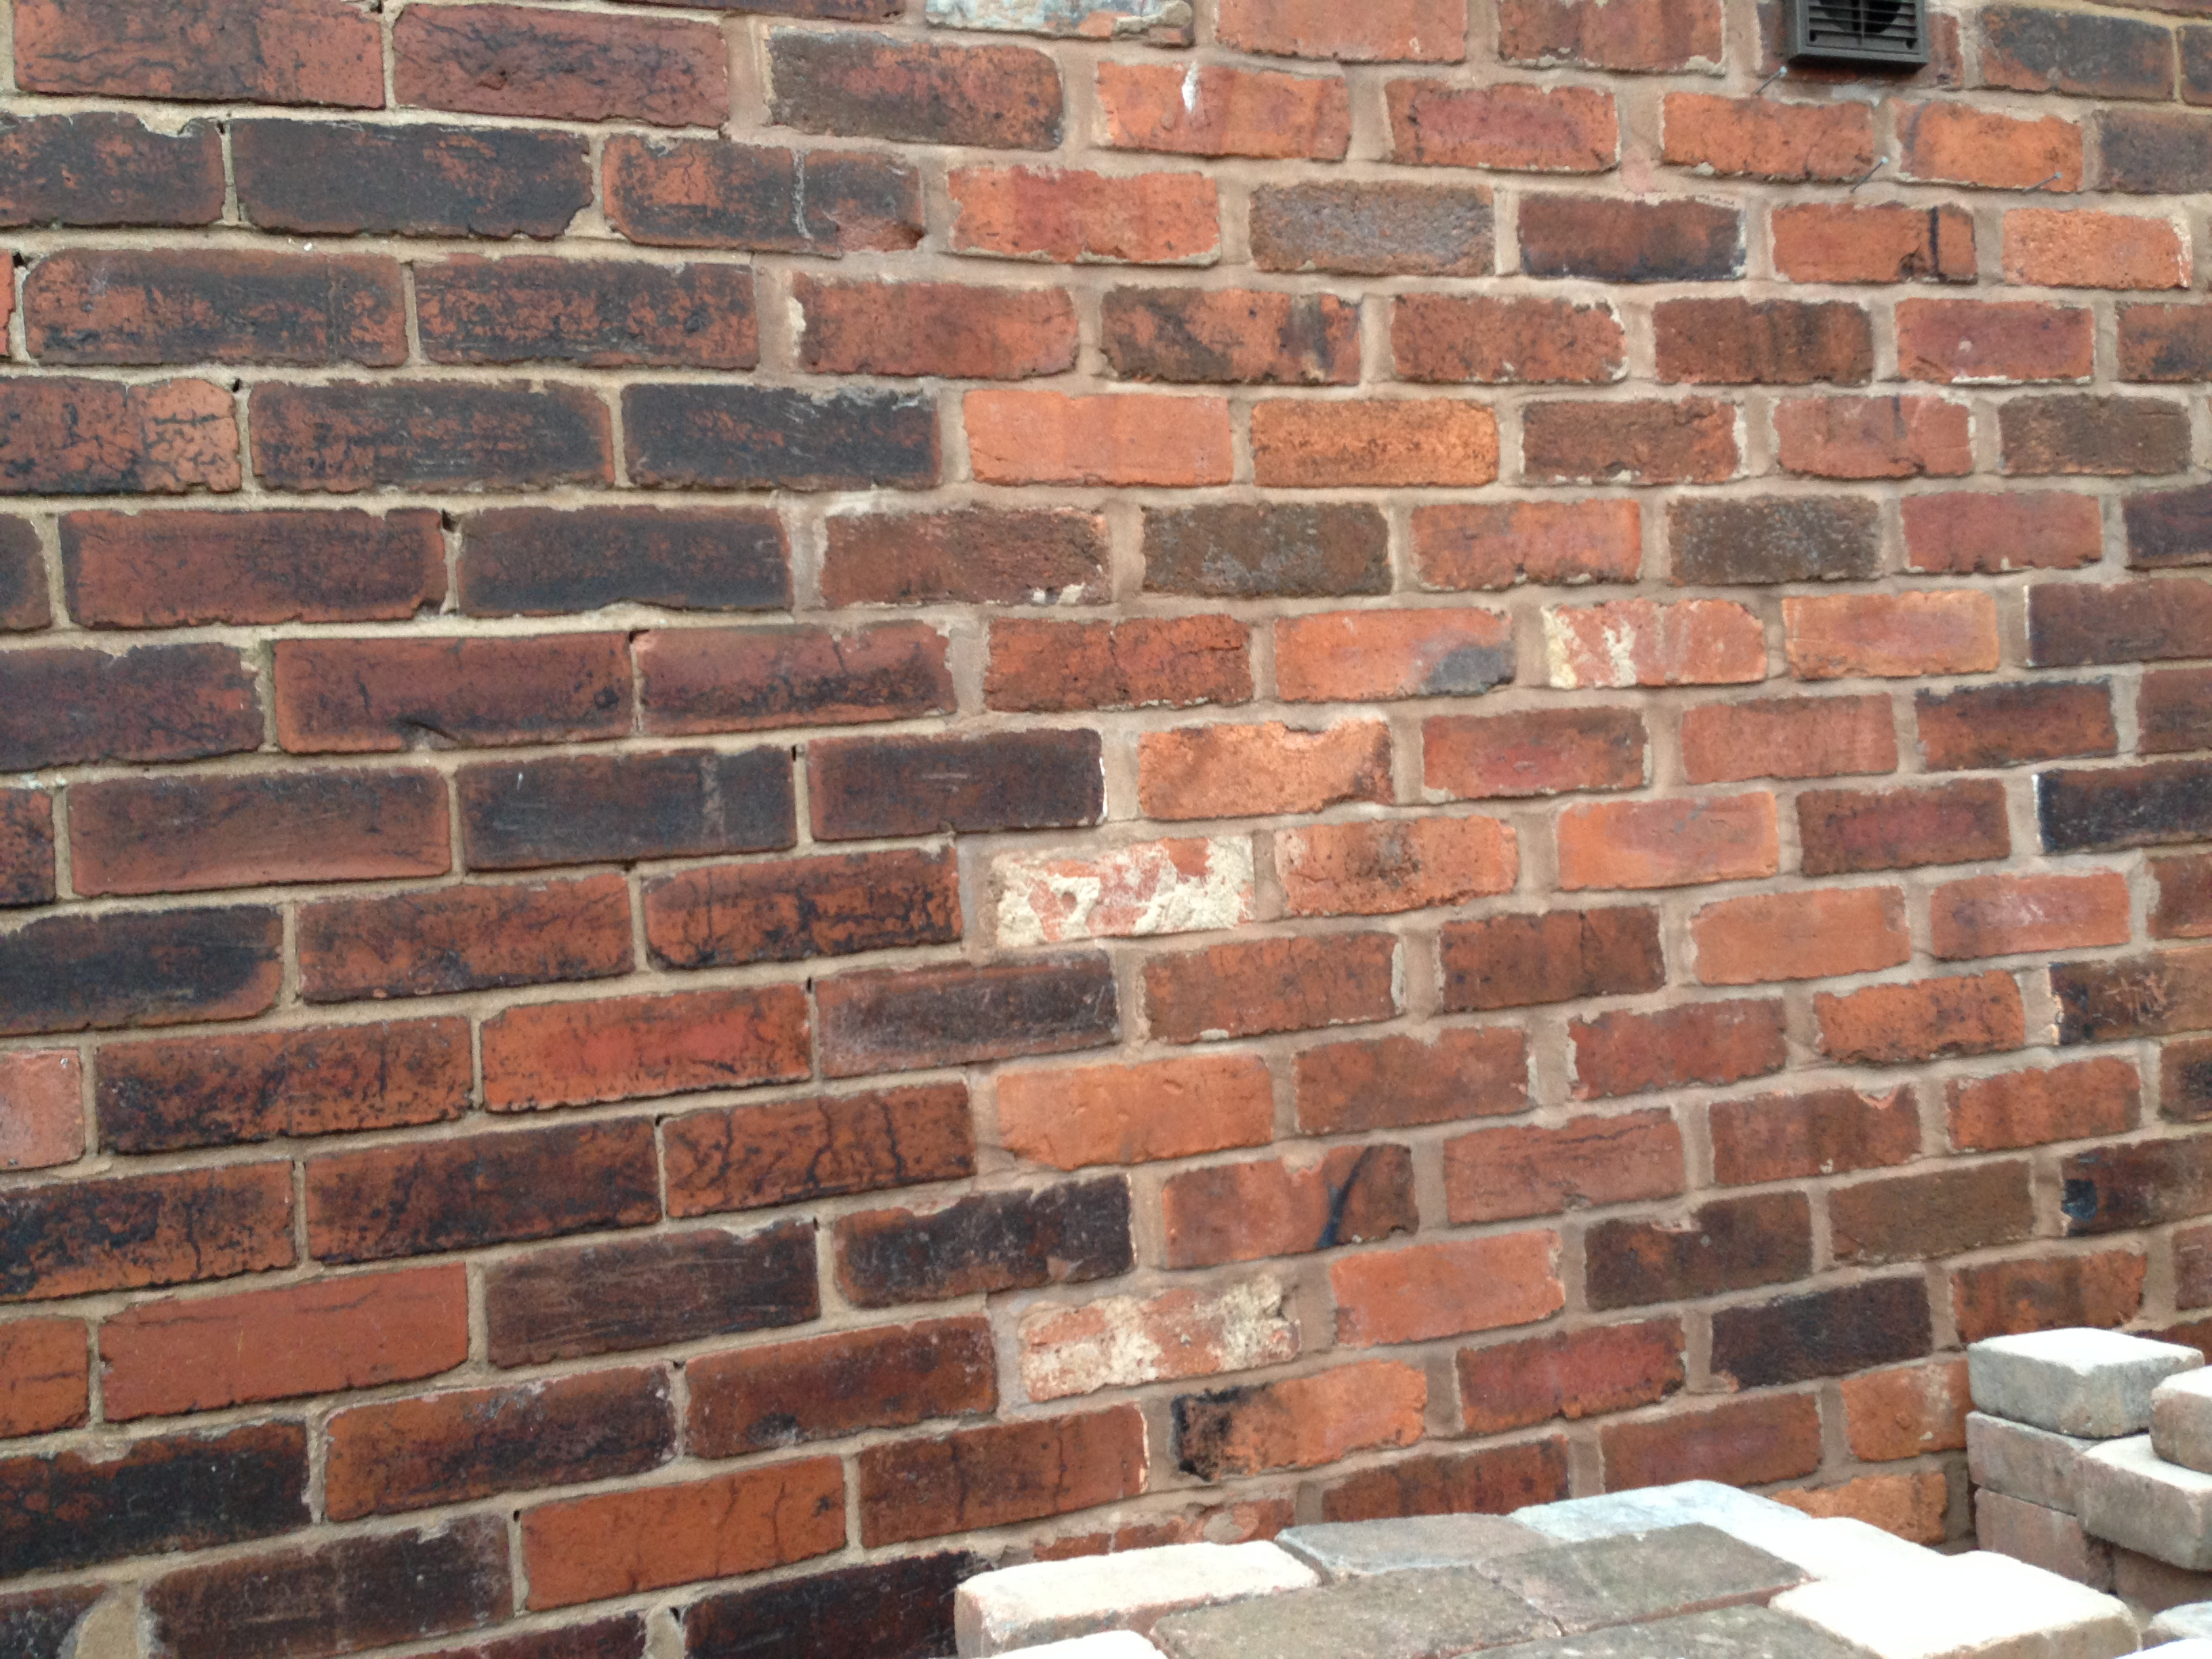 Door removed and bricked up